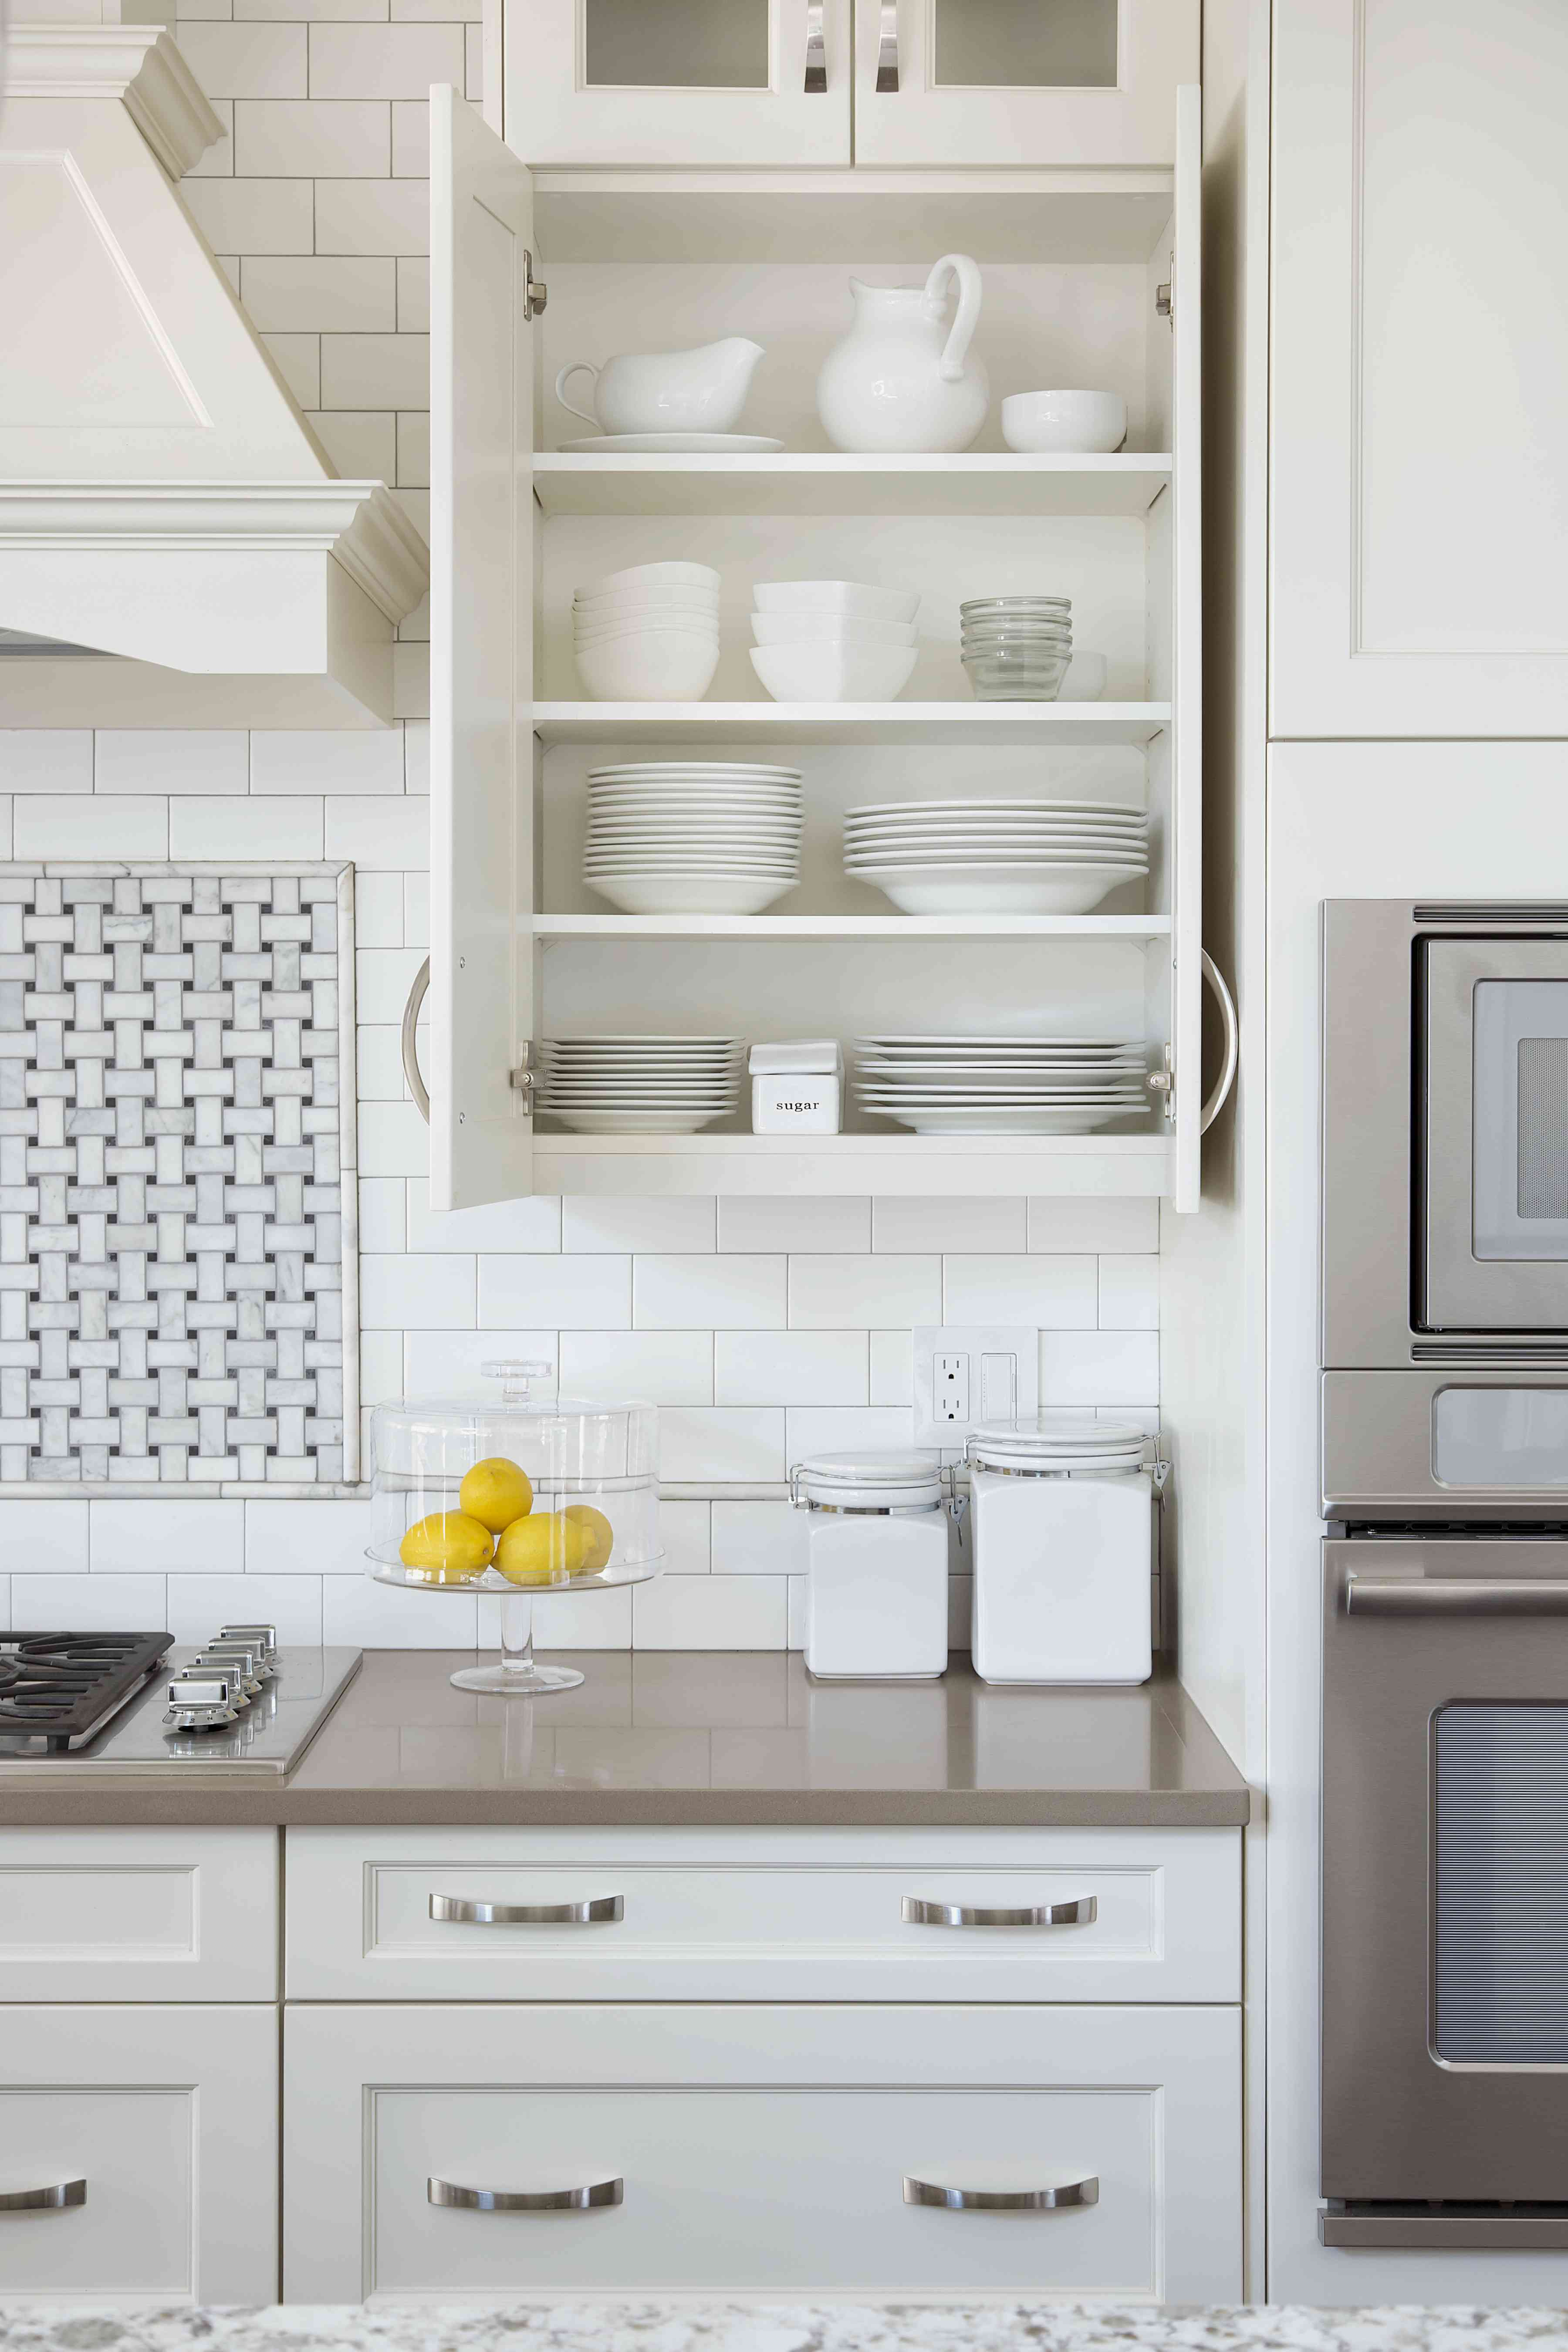 These Kitchen Counter Organization Ideas Will Give You the Storage Solutions You Need